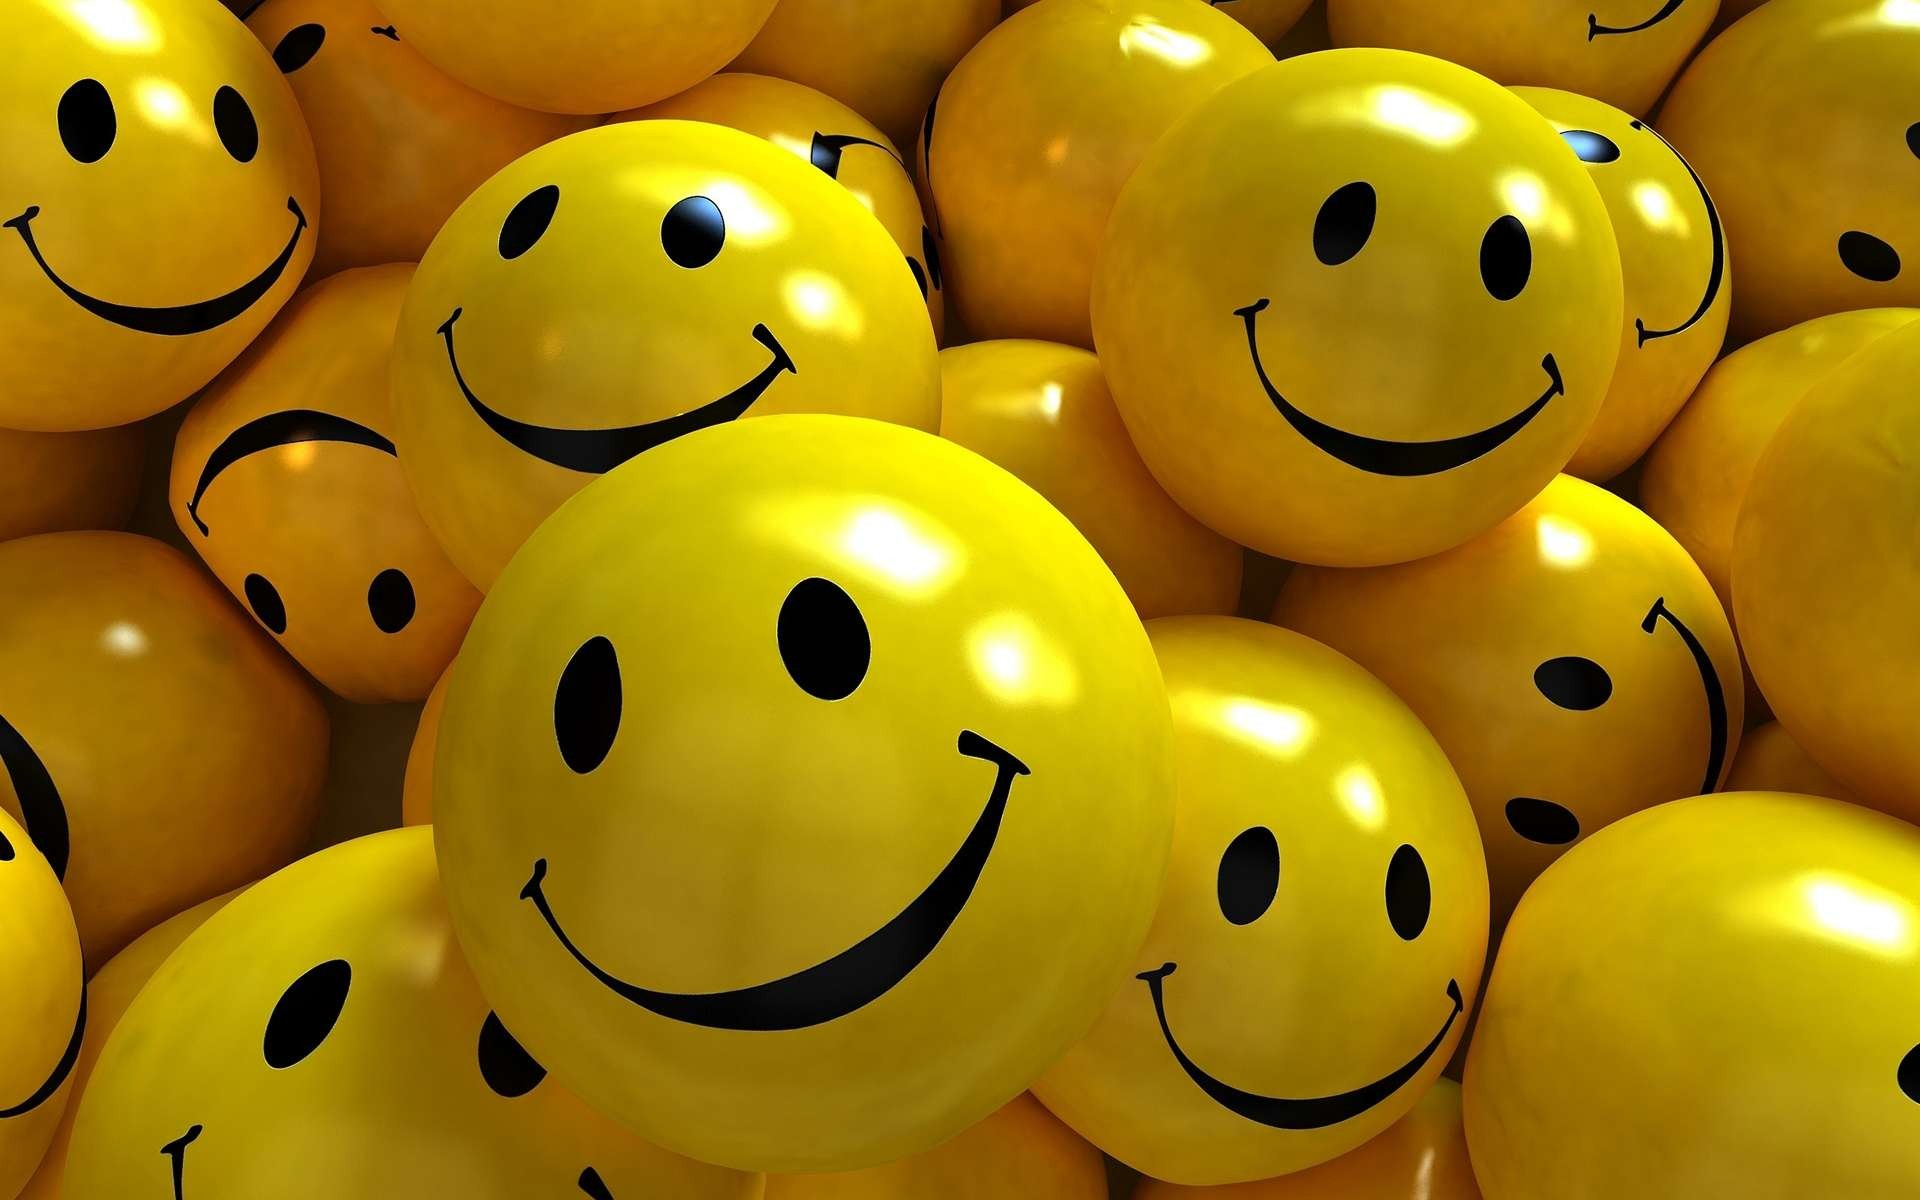 3D Smiley Face Wallpaper 2456